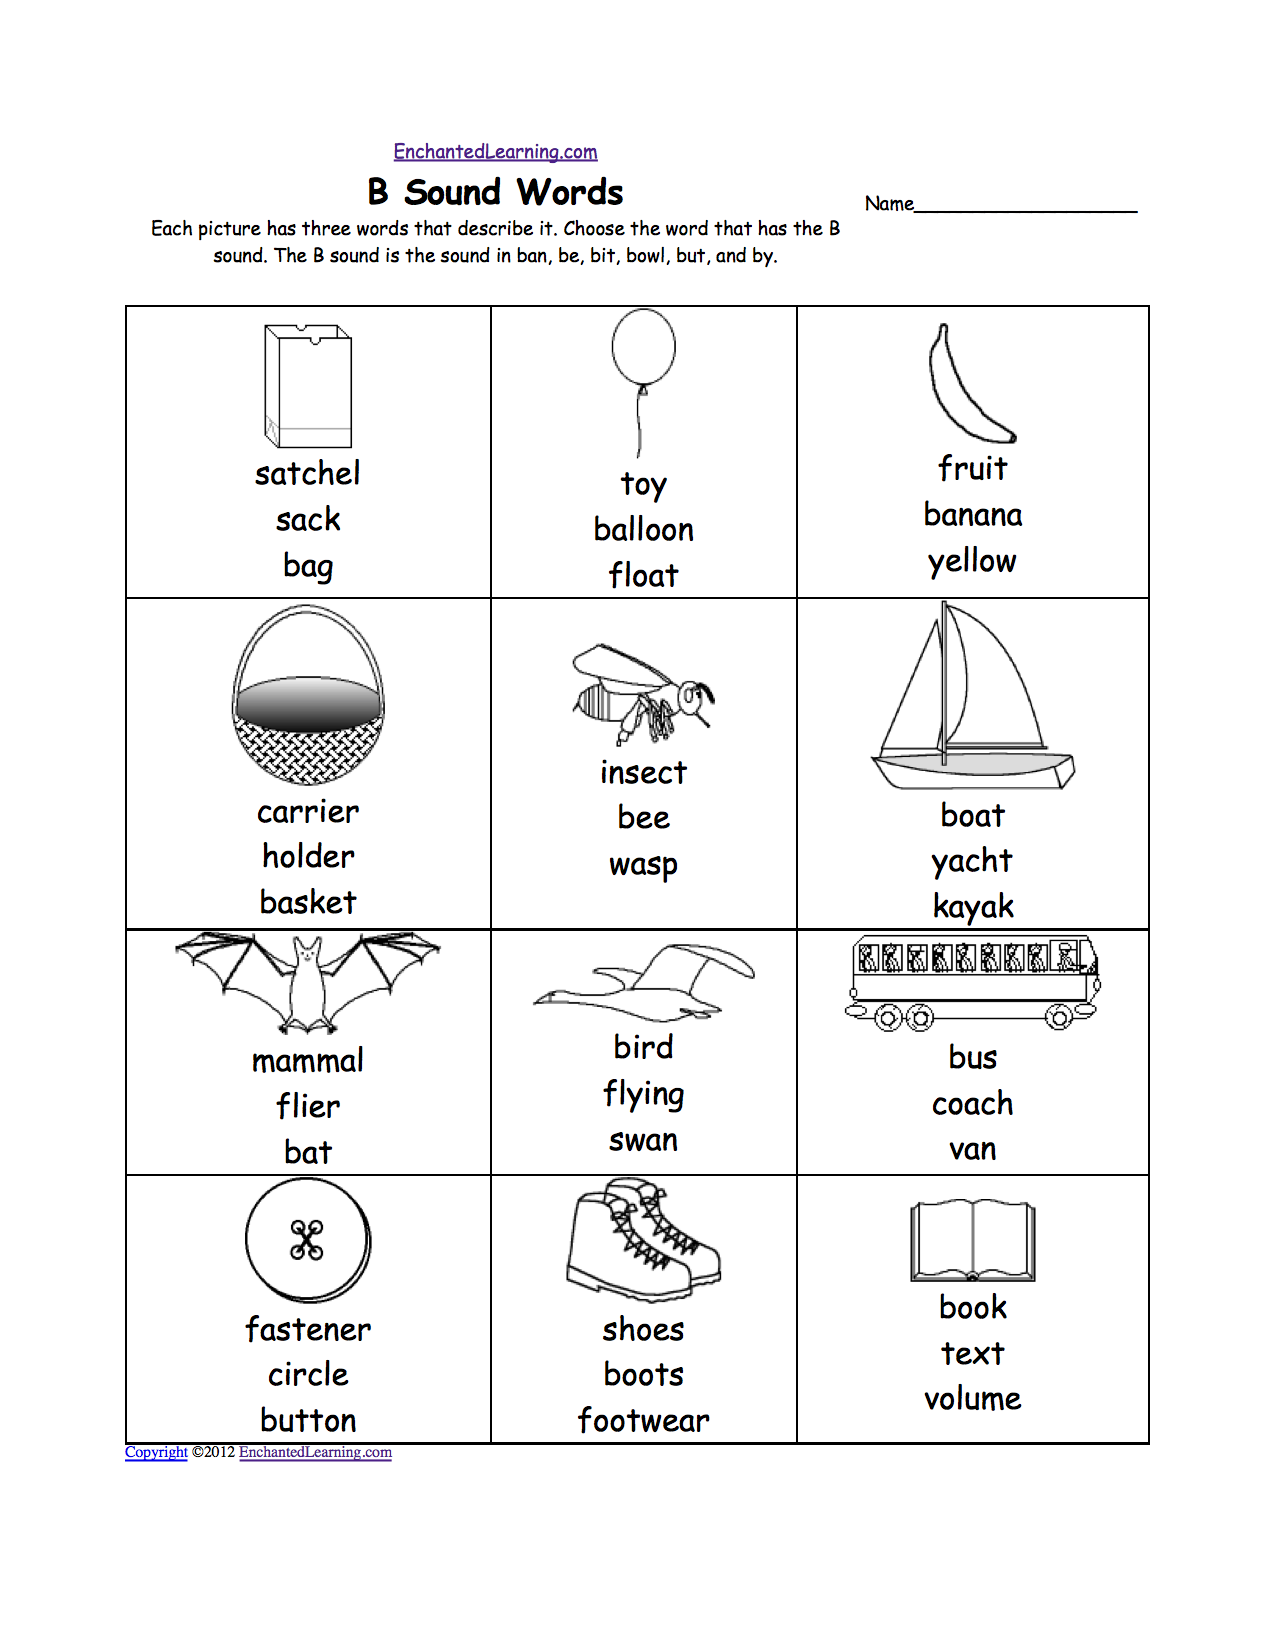 Proatmealus  Outstanding Phonics Worksheets Multiple Choice Worksheets To Print  With Goodlooking Quotbquot Sound Phonics Worksheet Multiple Choice Each Picture Has Three Words That Describe It Choose The Word That Has A Quotbquot Sound The Quotbquot Sound Is The Sound  With Lovely Number  Tracing Worksheets Also Teaching Manners Worksheets In Addition Teachers Printable Worksheets And Third Grade Telling Time Worksheets As Well As Blank Coat Of Arms Worksheet Additionally Rocket Math Printable Worksheets From Enchantedlearningcom With Proatmealus  Goodlooking Phonics Worksheets Multiple Choice Worksheets To Print  With Lovely Quotbquot Sound Phonics Worksheet Multiple Choice Each Picture Has Three Words That Describe It Choose The Word That Has A Quotbquot Sound The Quotbquot Sound Is The Sound  And Outstanding Number  Tracing Worksheets Also Teaching Manners Worksheets In Addition Teachers Printable Worksheets From Enchantedlearningcom